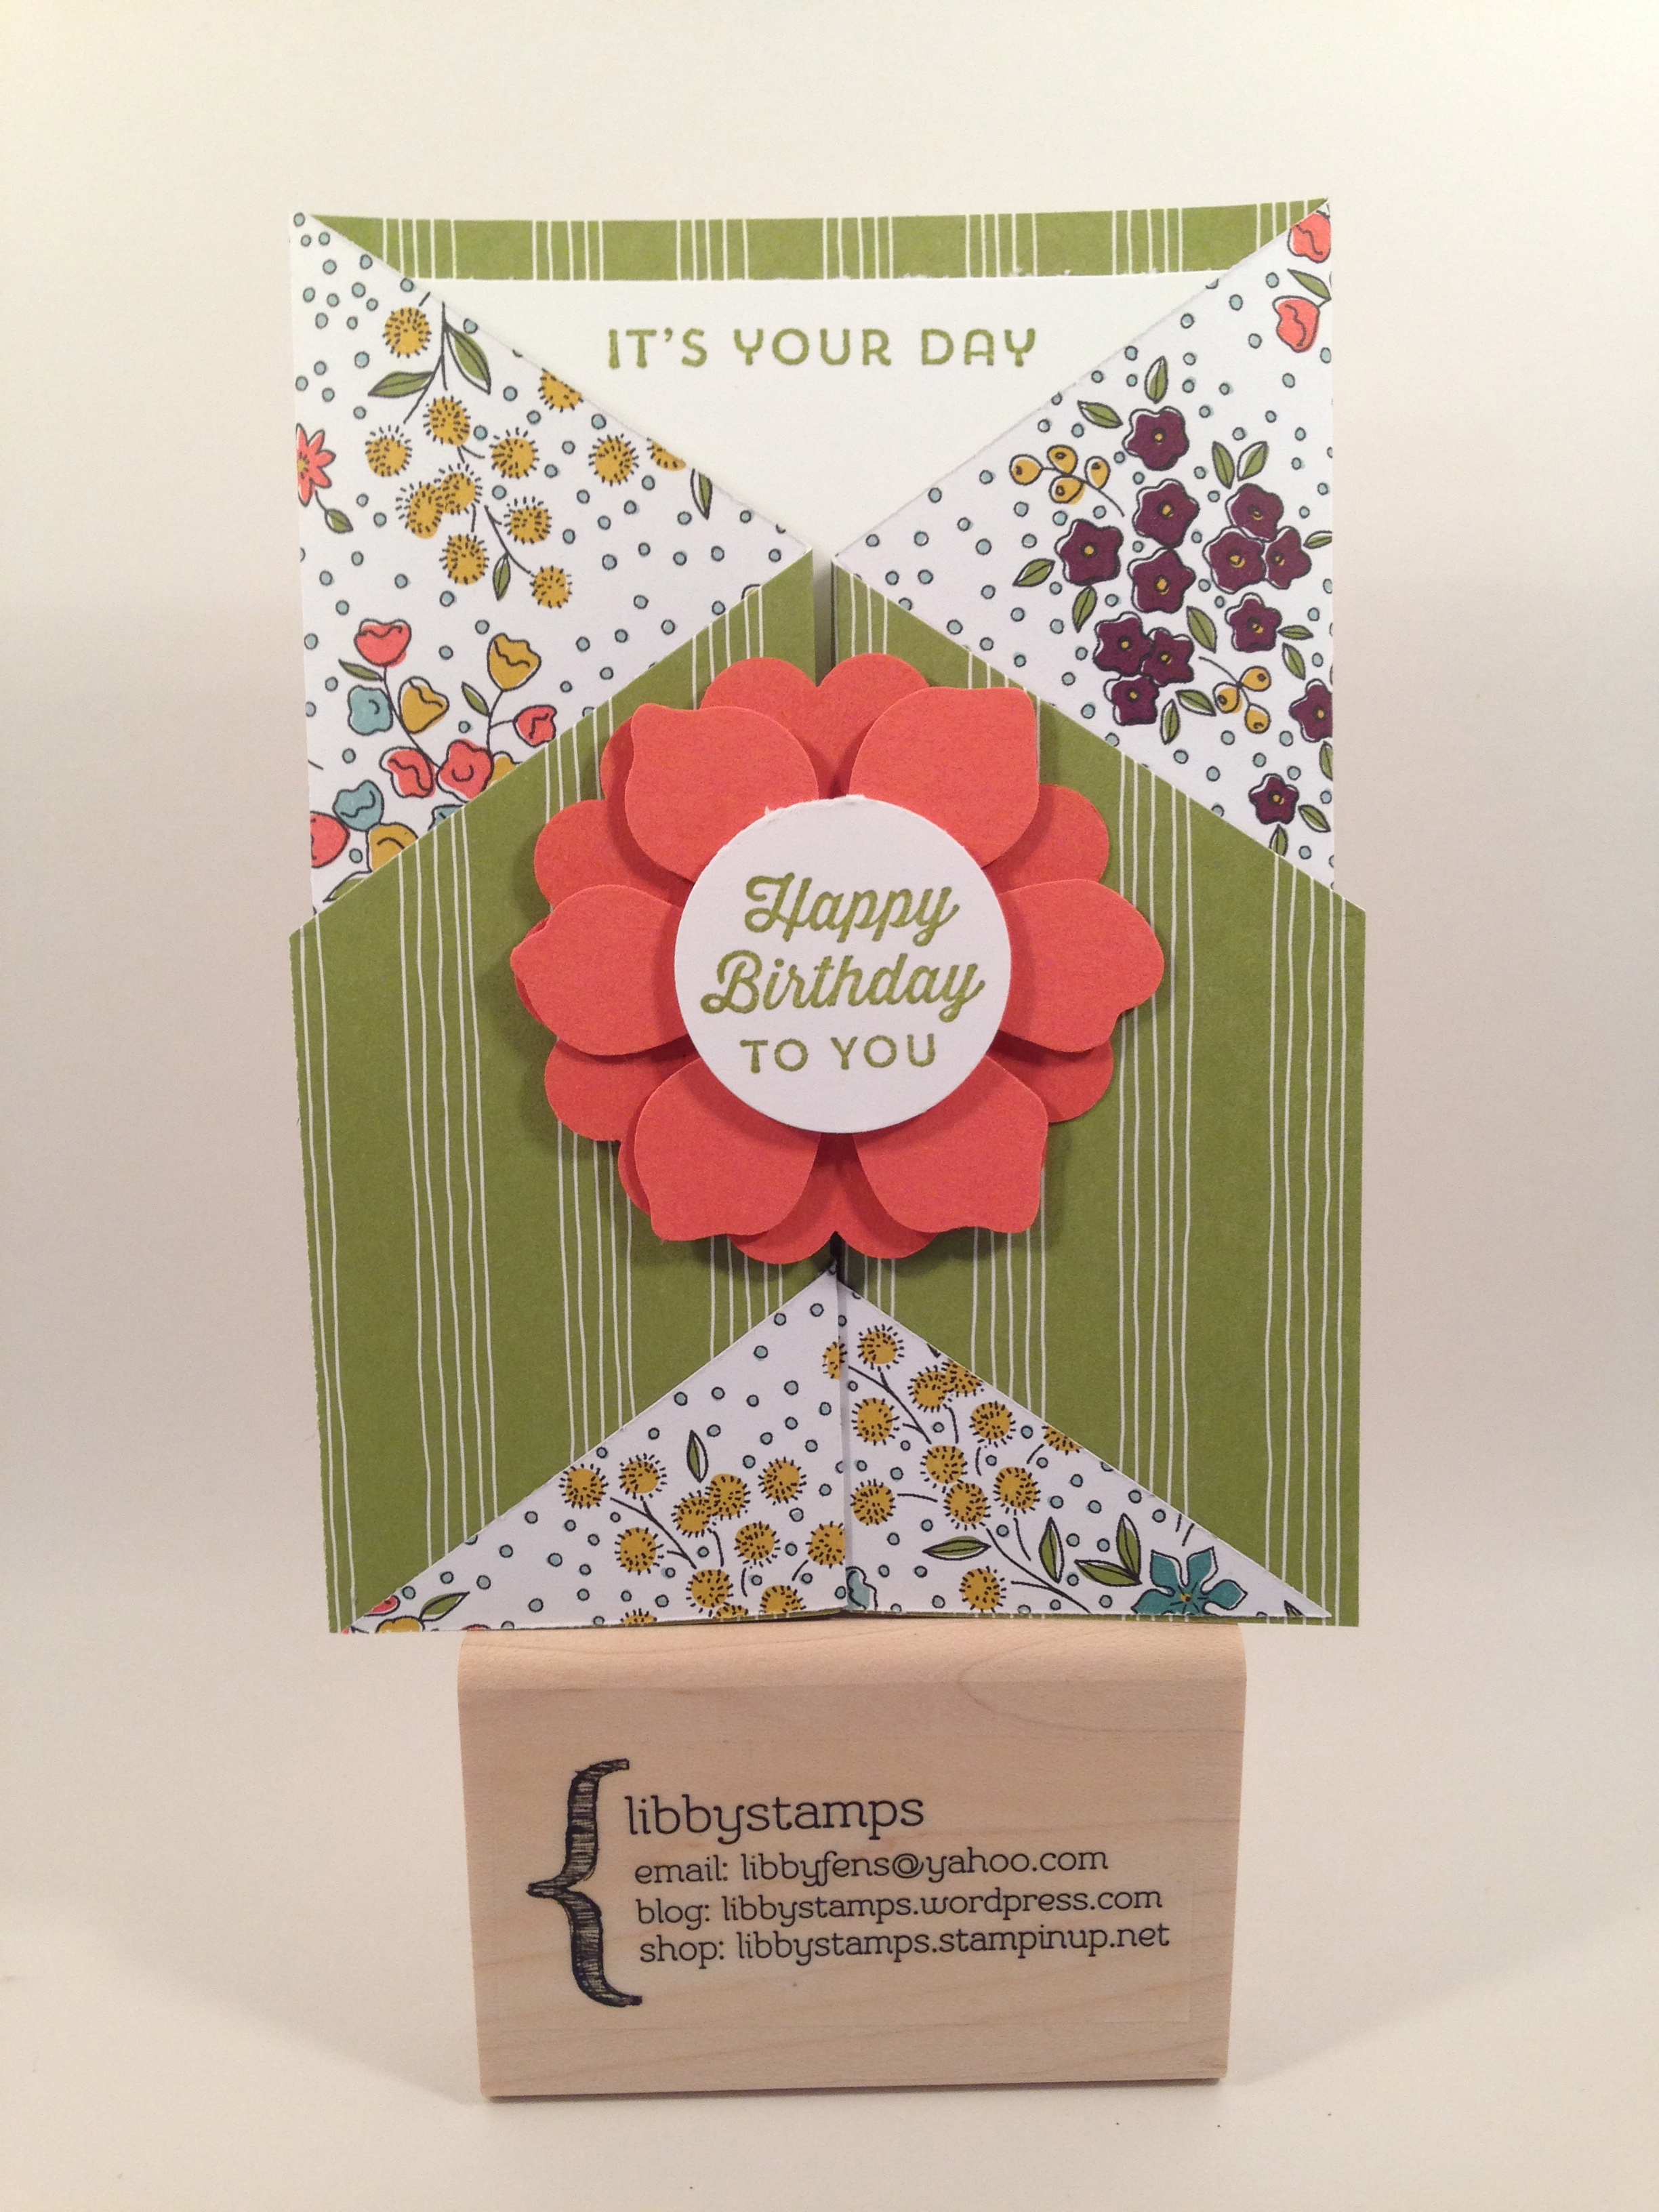 libbystamps, Stampin Up, 2 3/8 Scallop Circle Punch, Fun Flower Punch, Double Gate Fold Card, Wildflower Fields DSP, Sunburst Sayings,